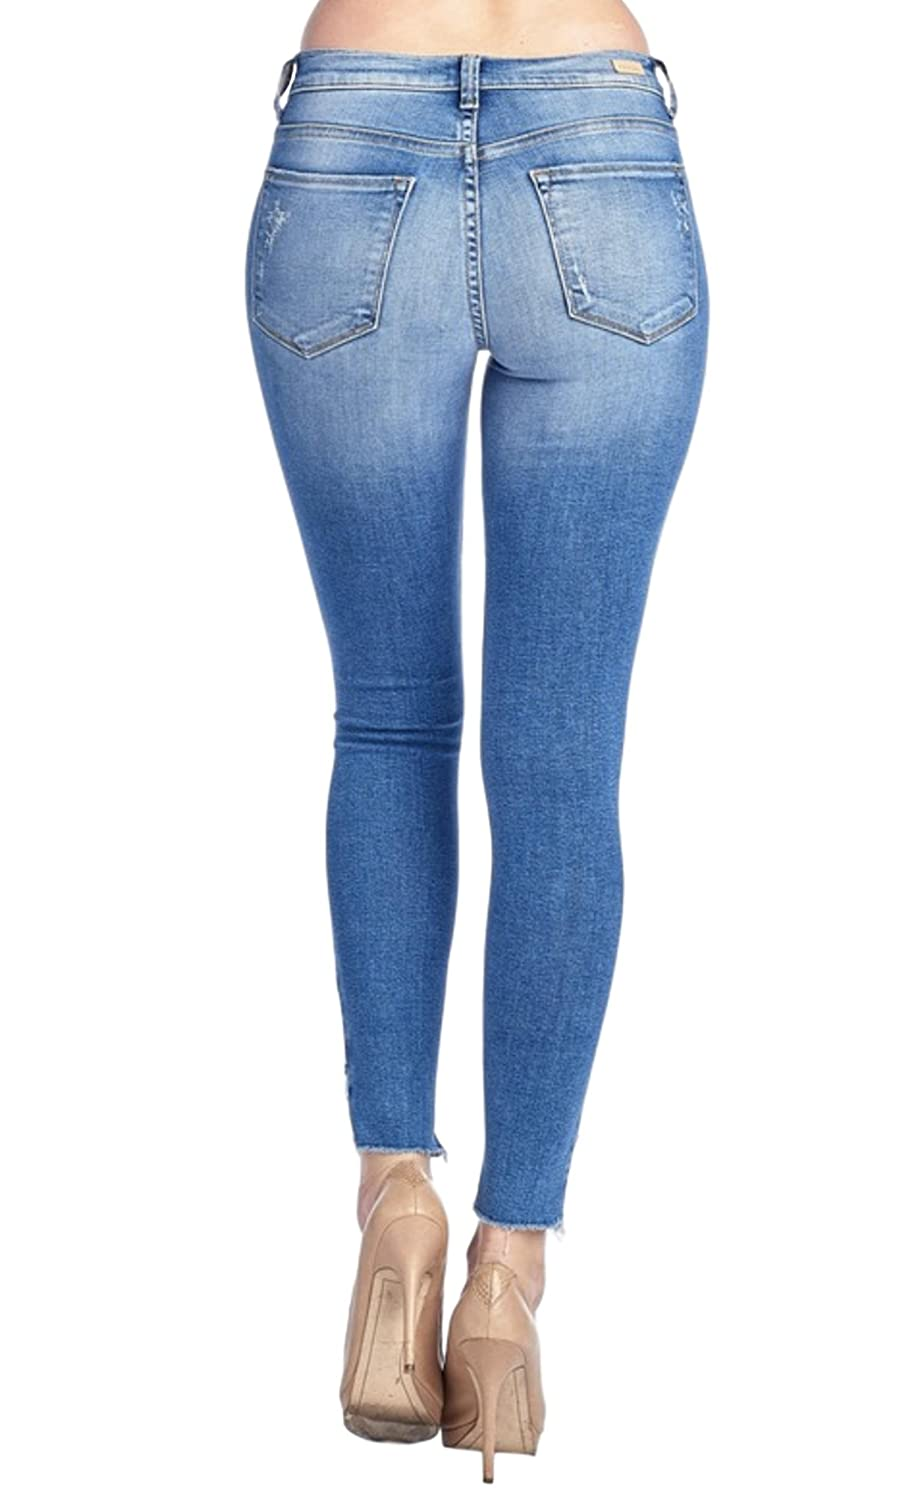 Sneak Peek Womens Mid Rise Cropped Skinny Jeans with Distressed Knee and Frayed Slant Hems